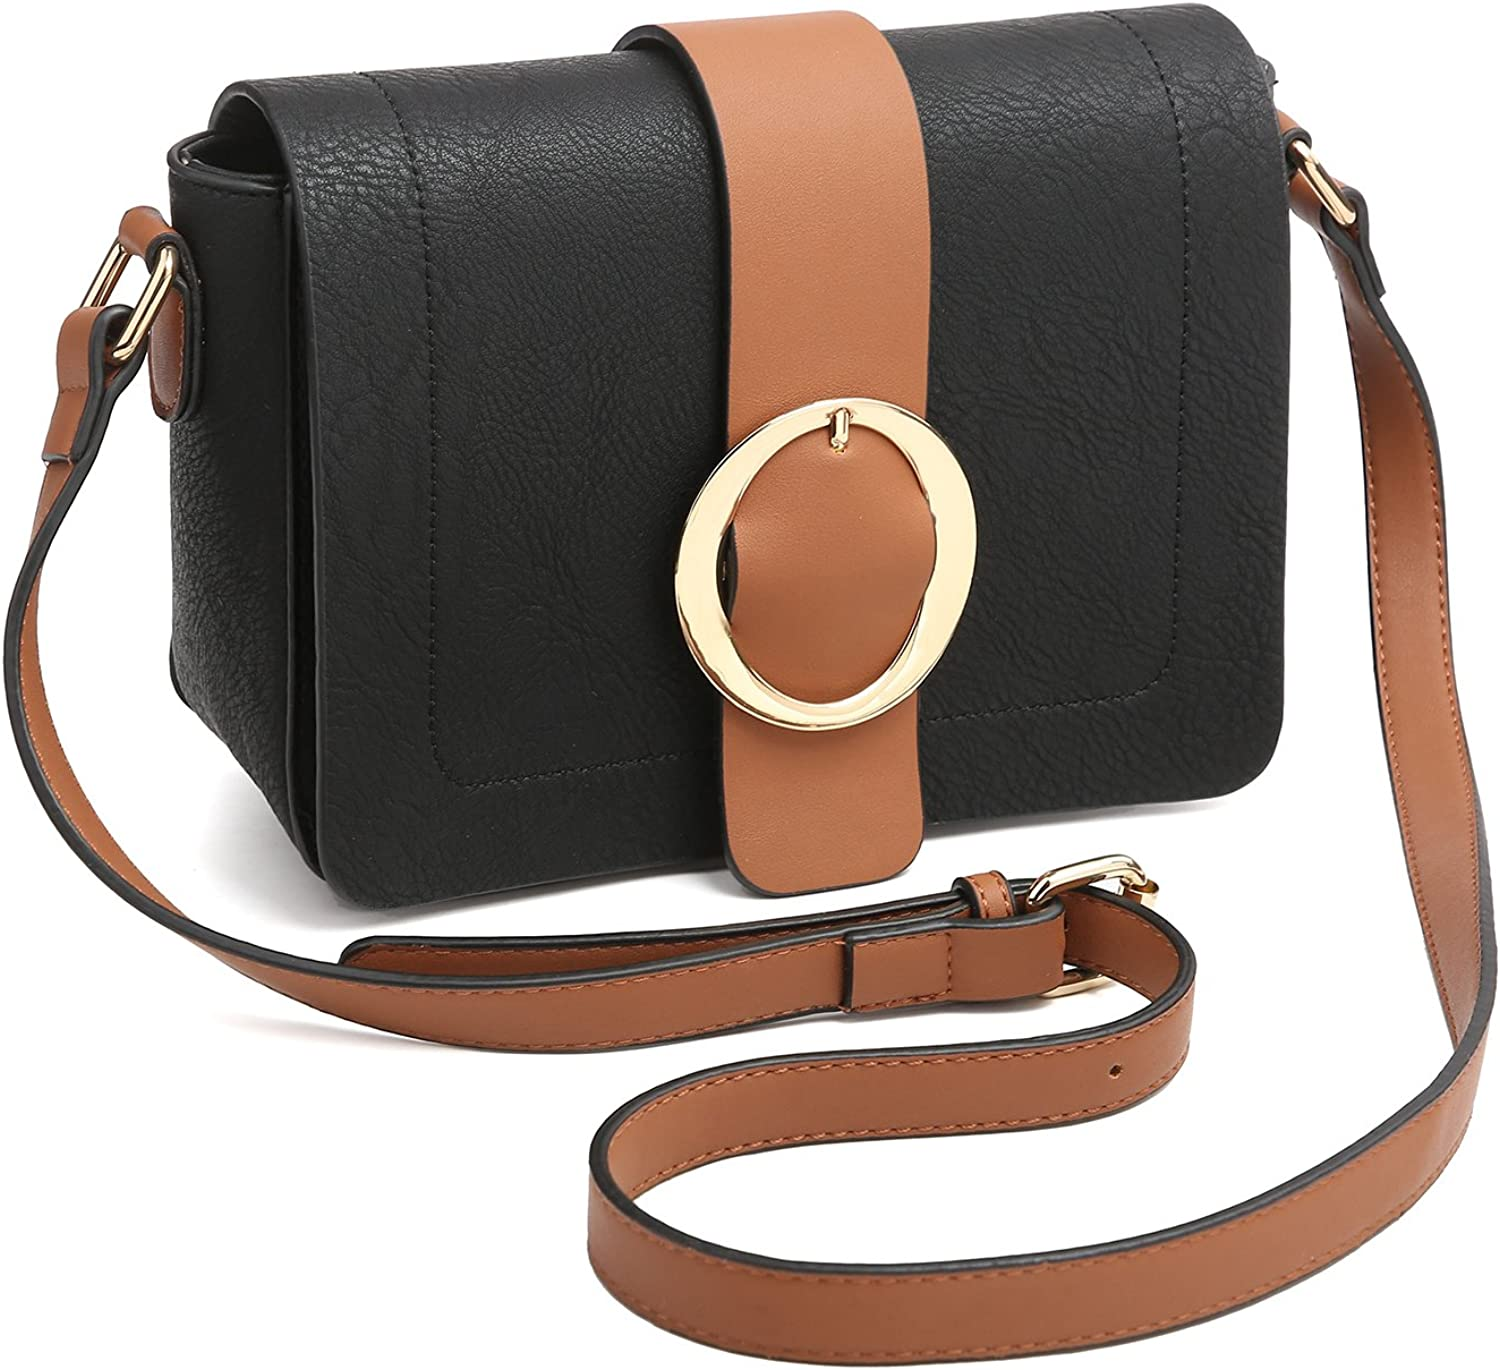 Details about  /Famous Brand Mini Crossbody Bags for Women Messenger Bags Small Female Shoulder